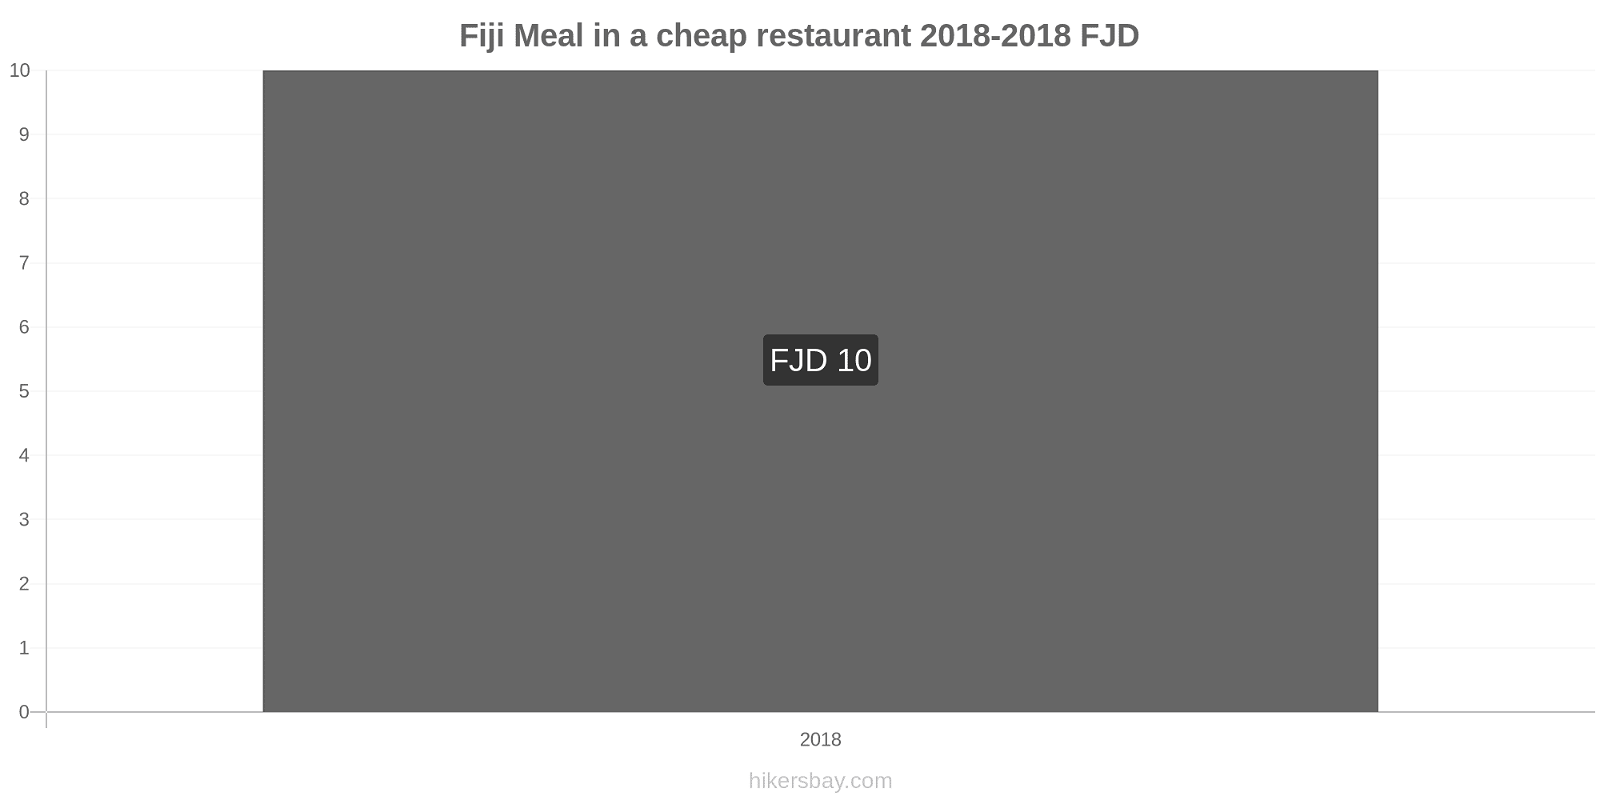 Fiji price changes Meal in a cheap restaurant hikersbay.com